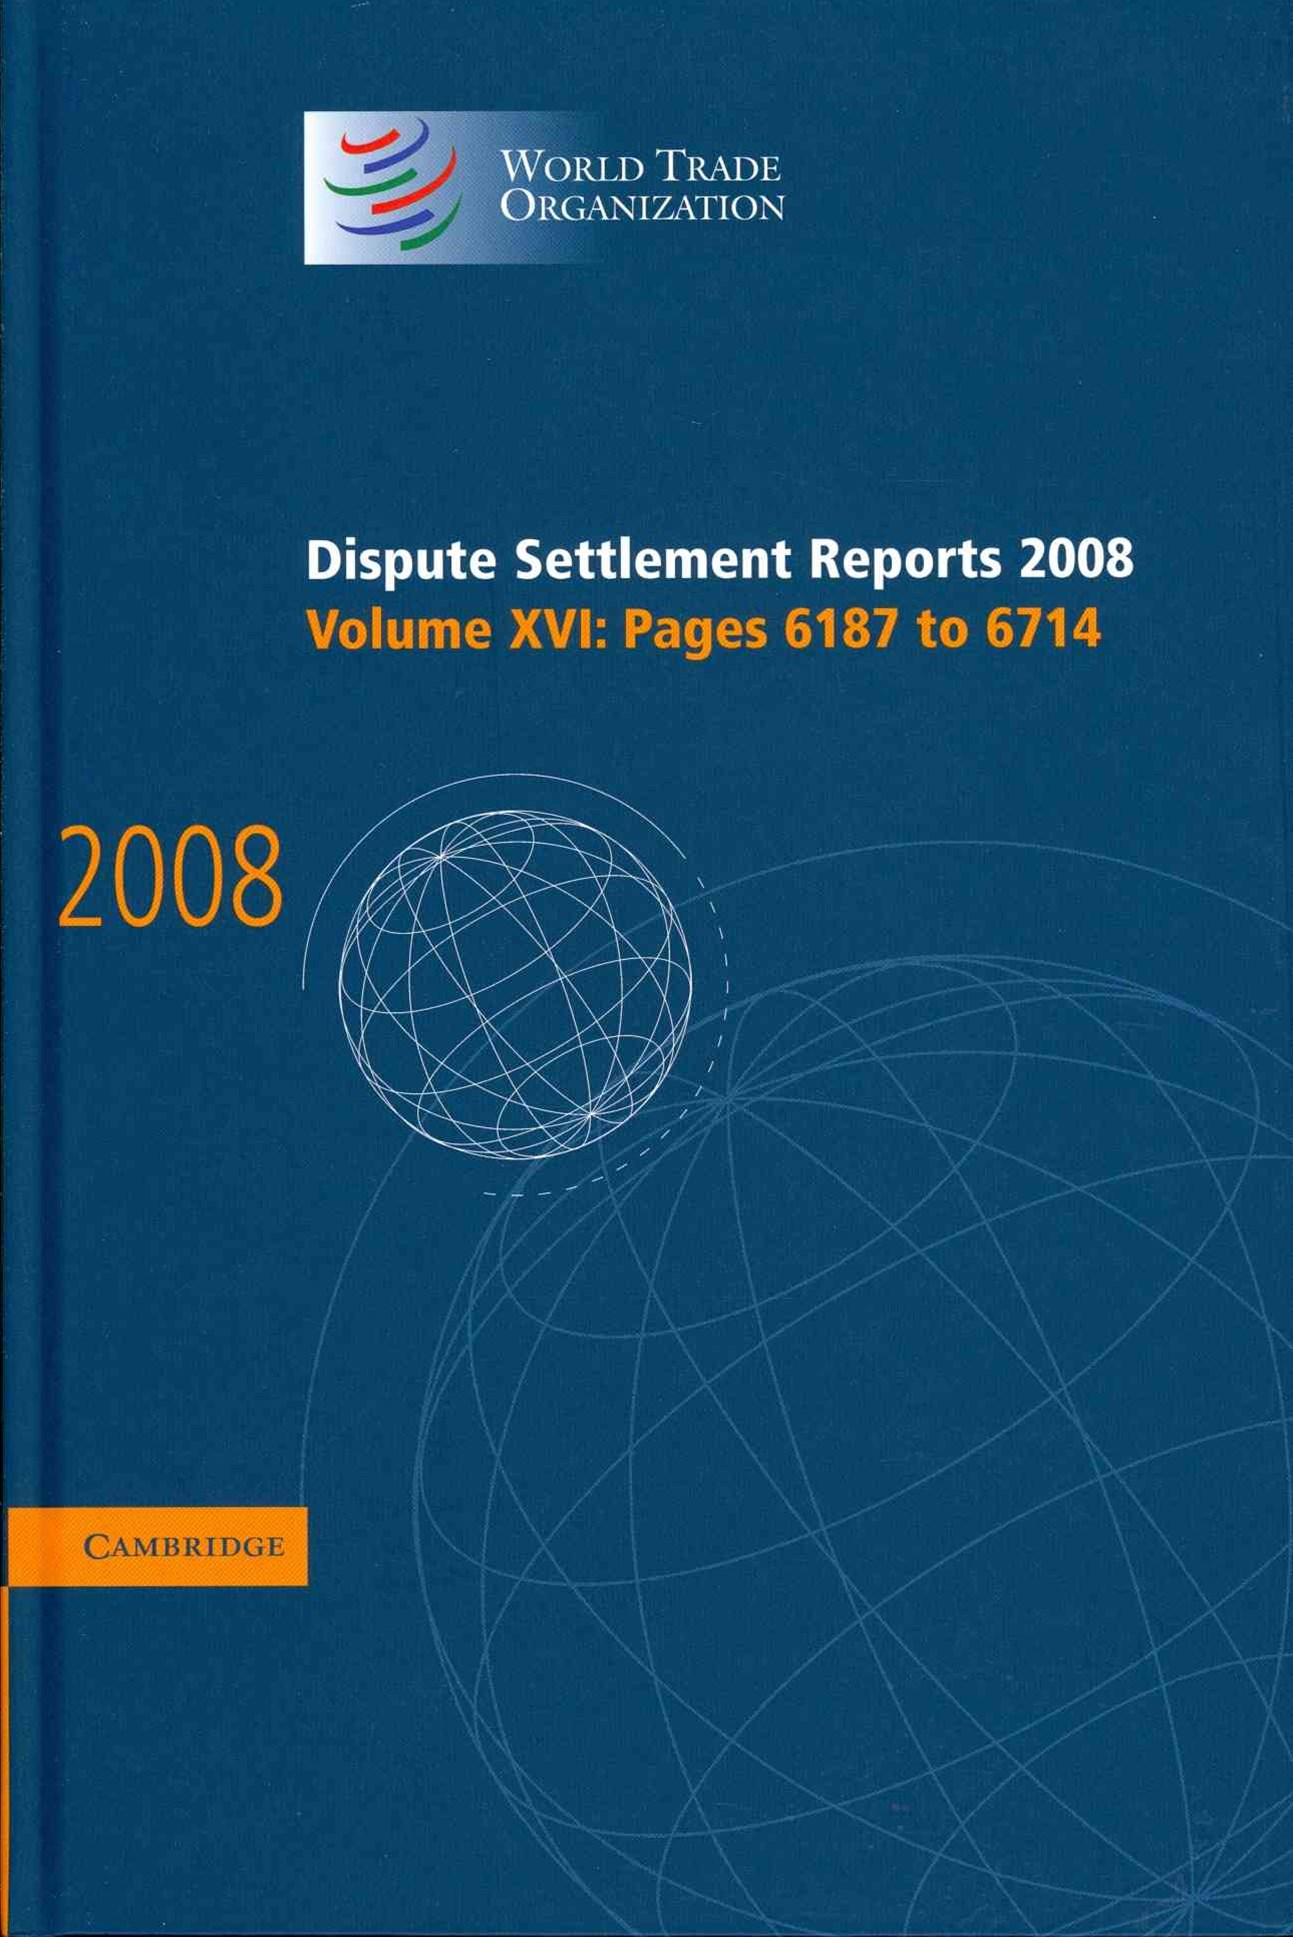 Dispute Settlement Reports 2008: Volume 16, Pages 6187-6714